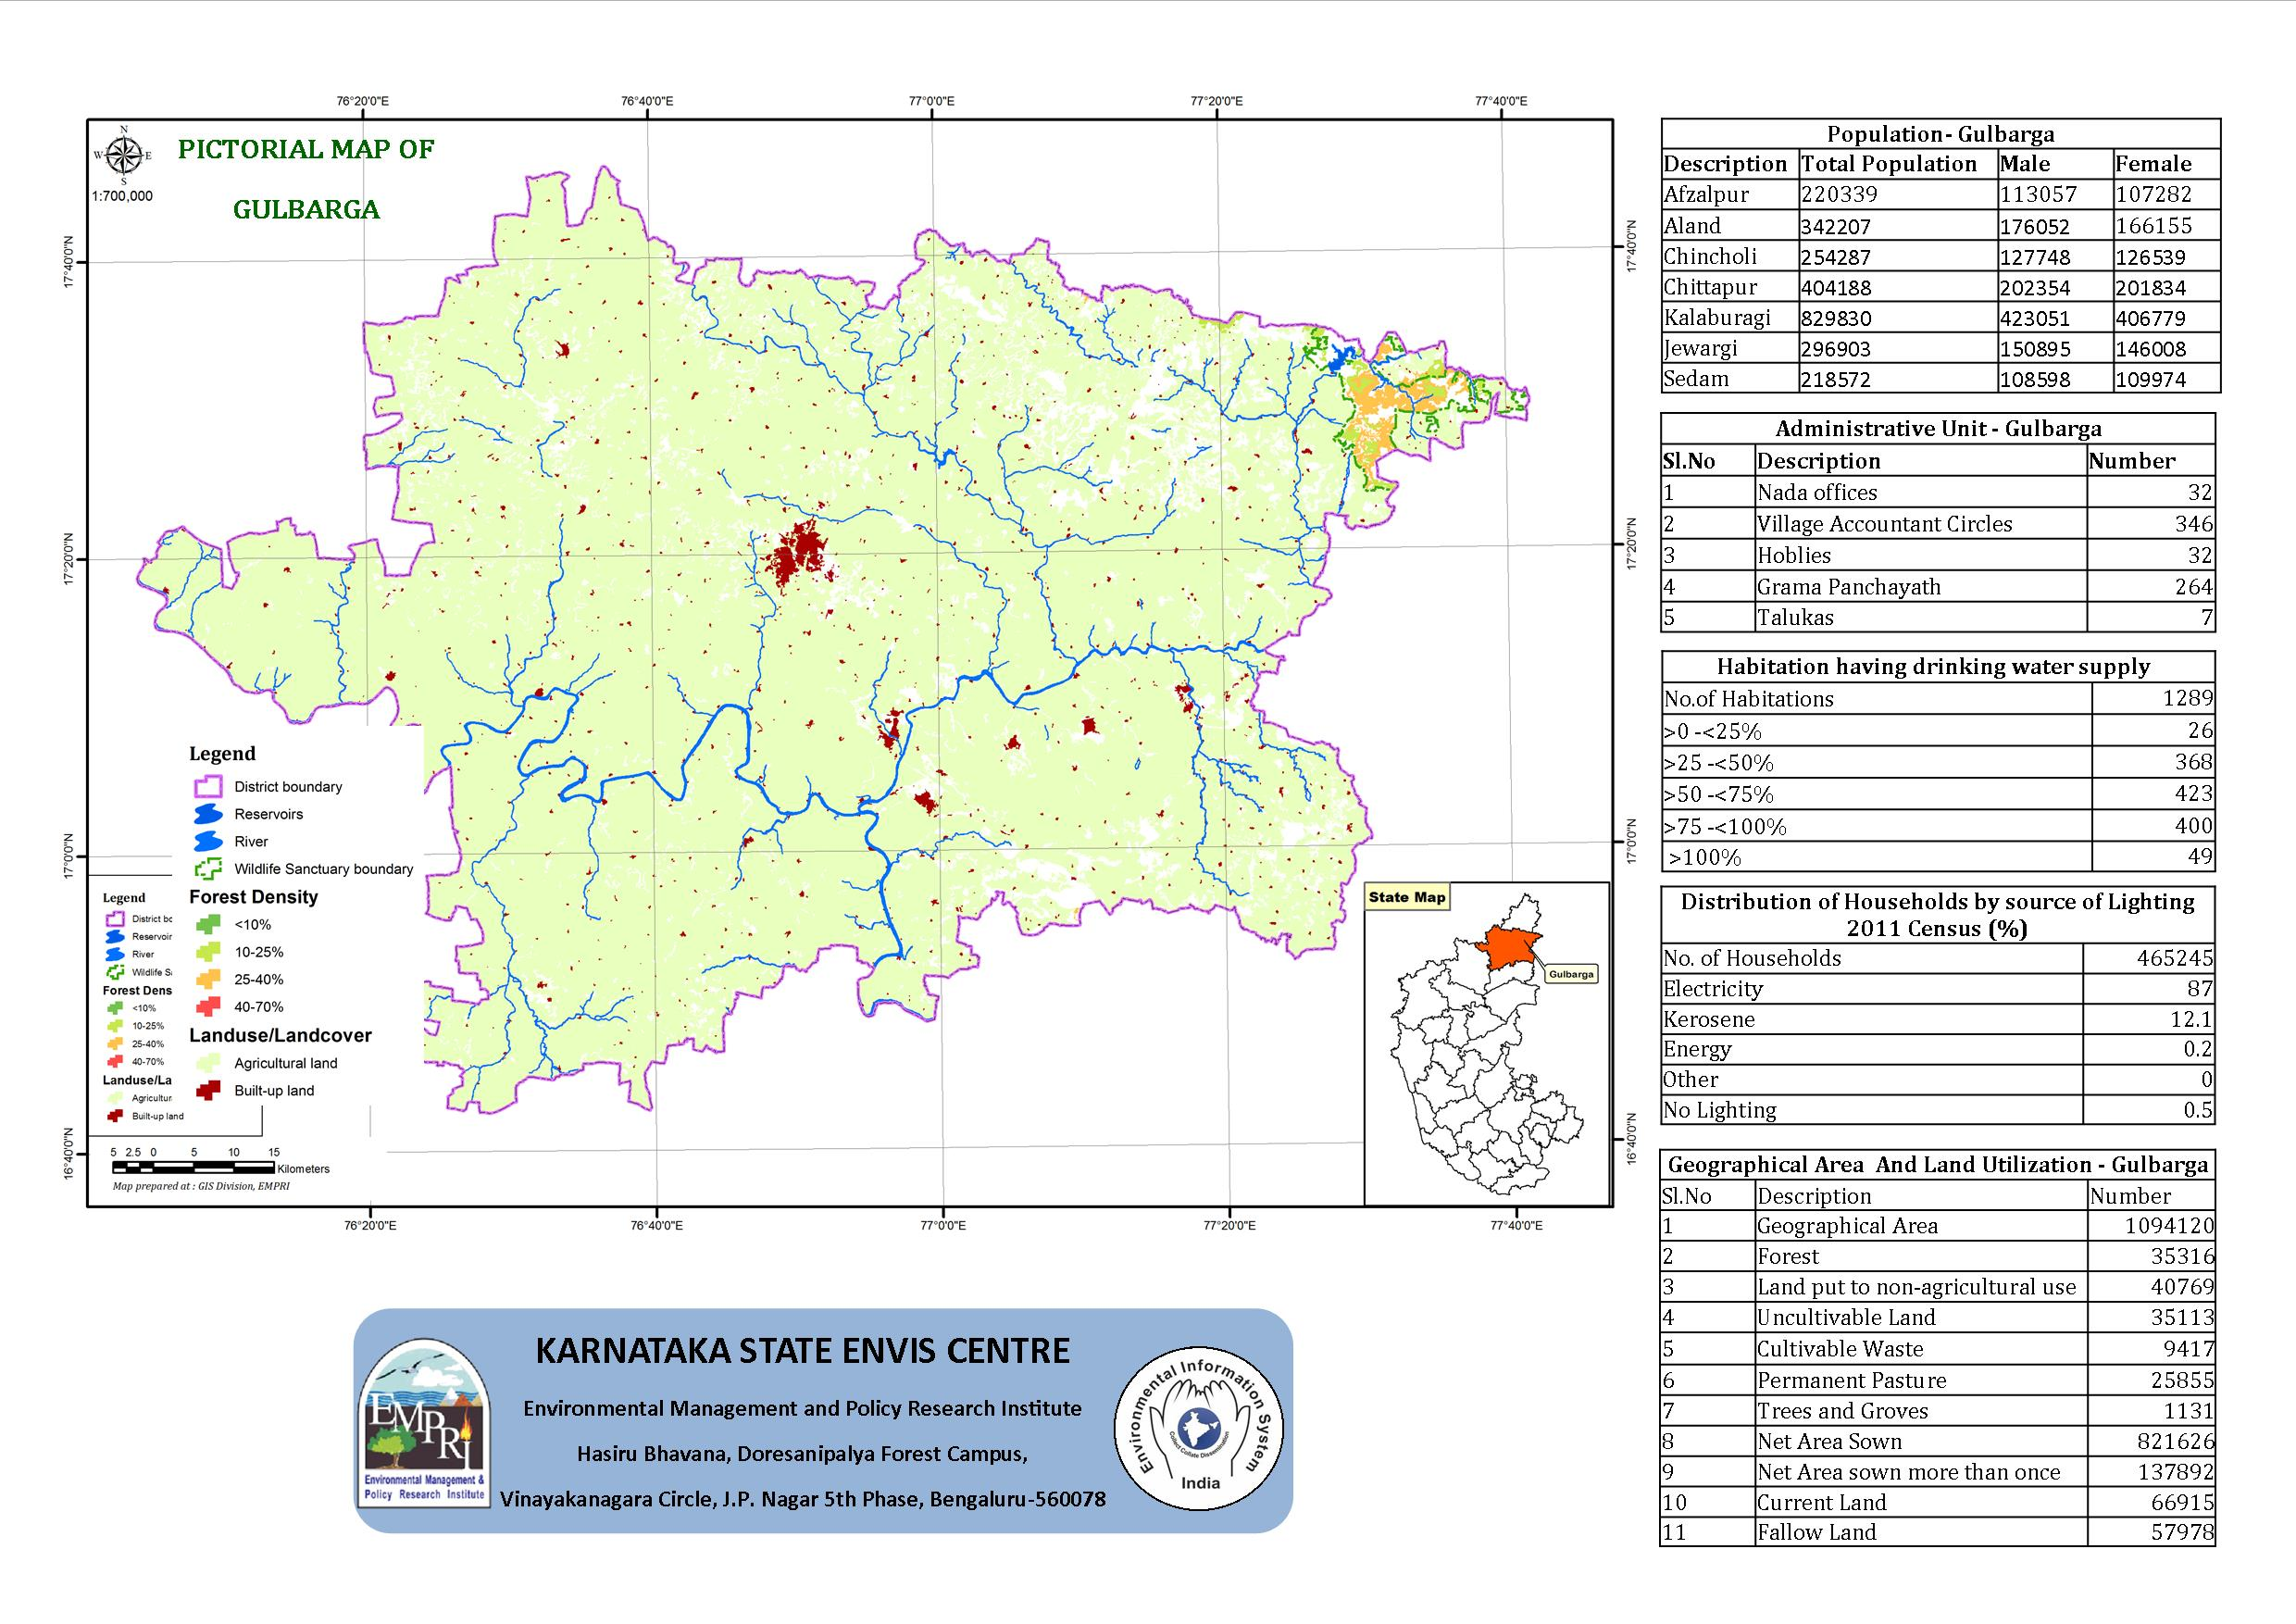 DISTRICT WISE THEMATIC MAPS of KARNATAKA on andhra pradesh map, sri lanka map, m.p. map, gujarat map, union territory map, maharashtra map, bangalore map, haryana map, telangana map, uttar pradesh map, west bengal map, tamilnadu map, uttarakhand map, kashmir map, kerala map, goa map, india map, delhi map, pondicherry map, rajasthan map,